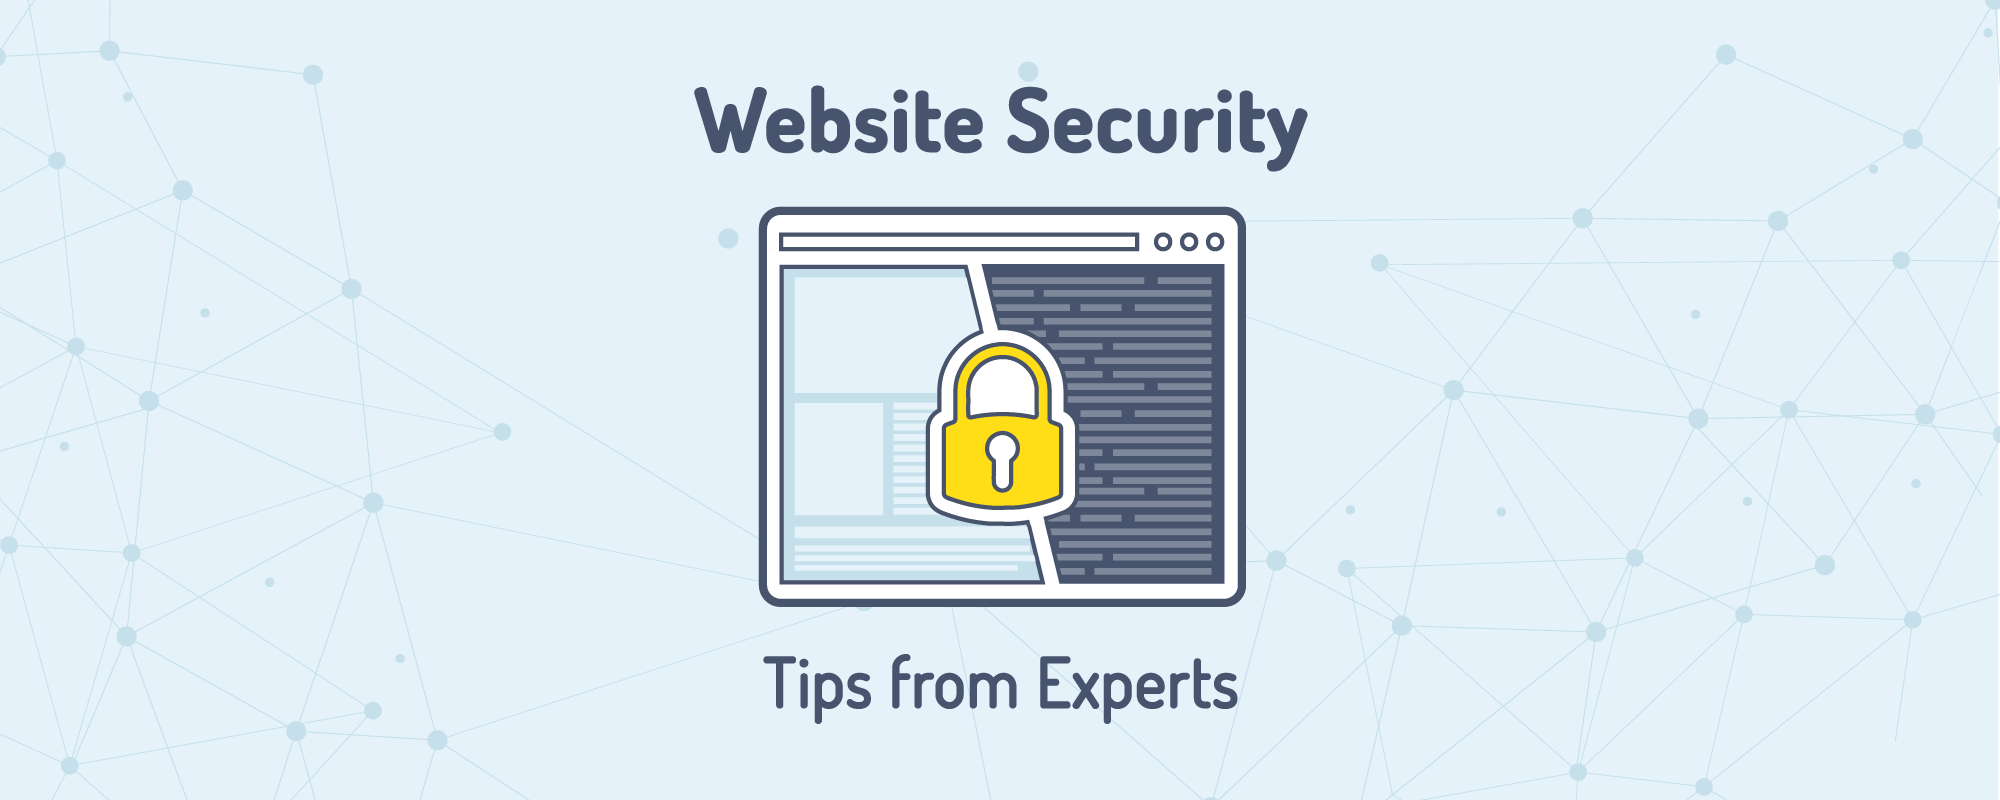 Best Security Tips from Pro Developers to Protect Website from Hackers